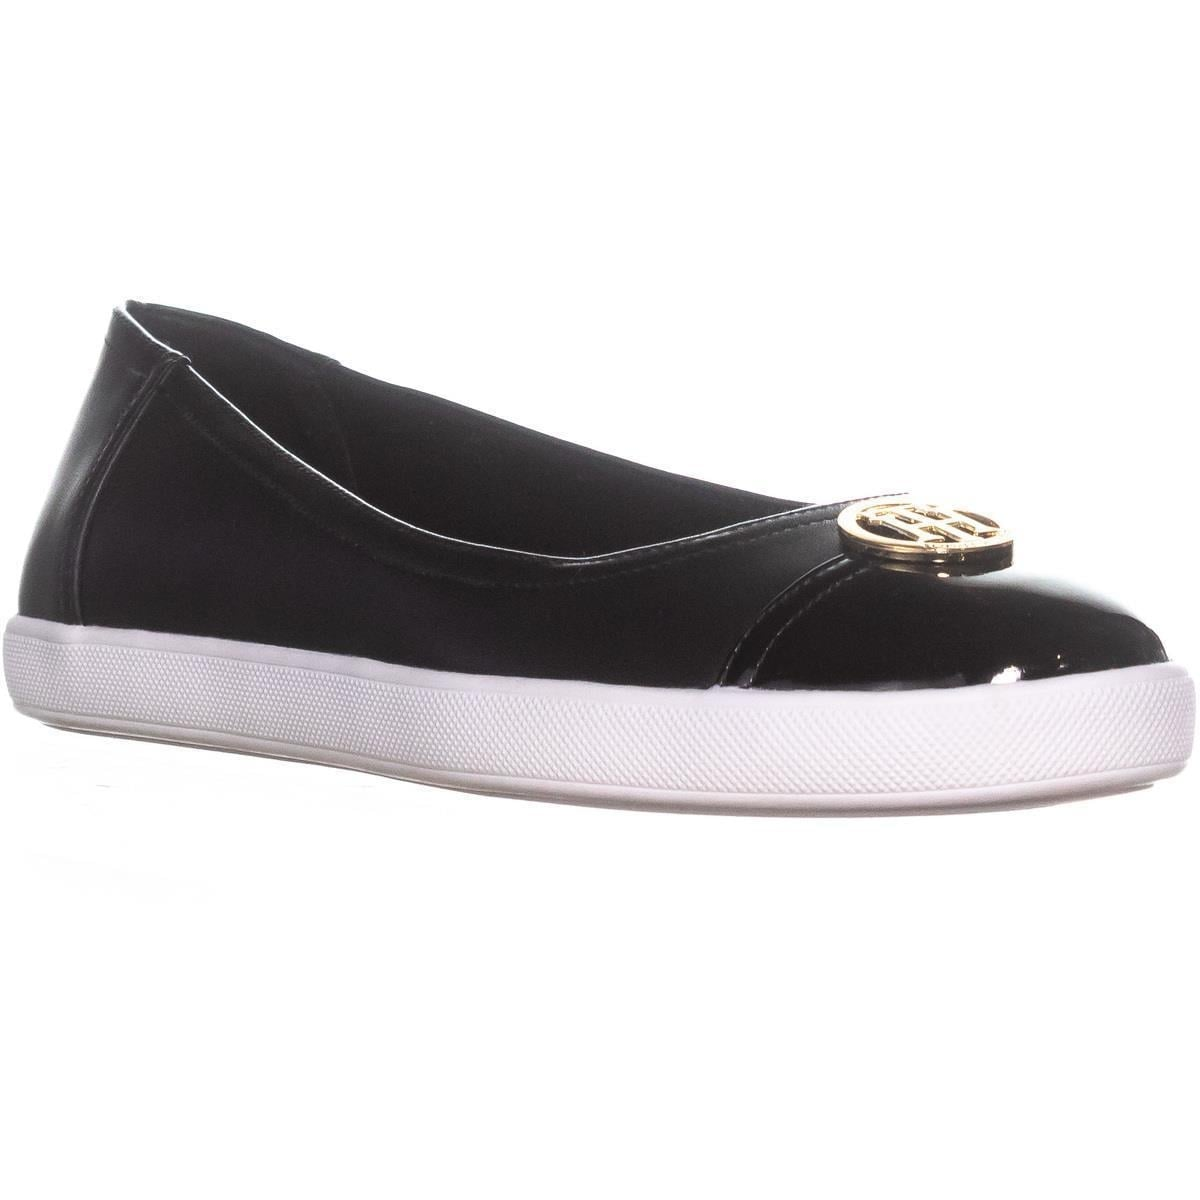 fa227d9ae Buy Tommy Hilfiger Women s Flats Online at Overstock